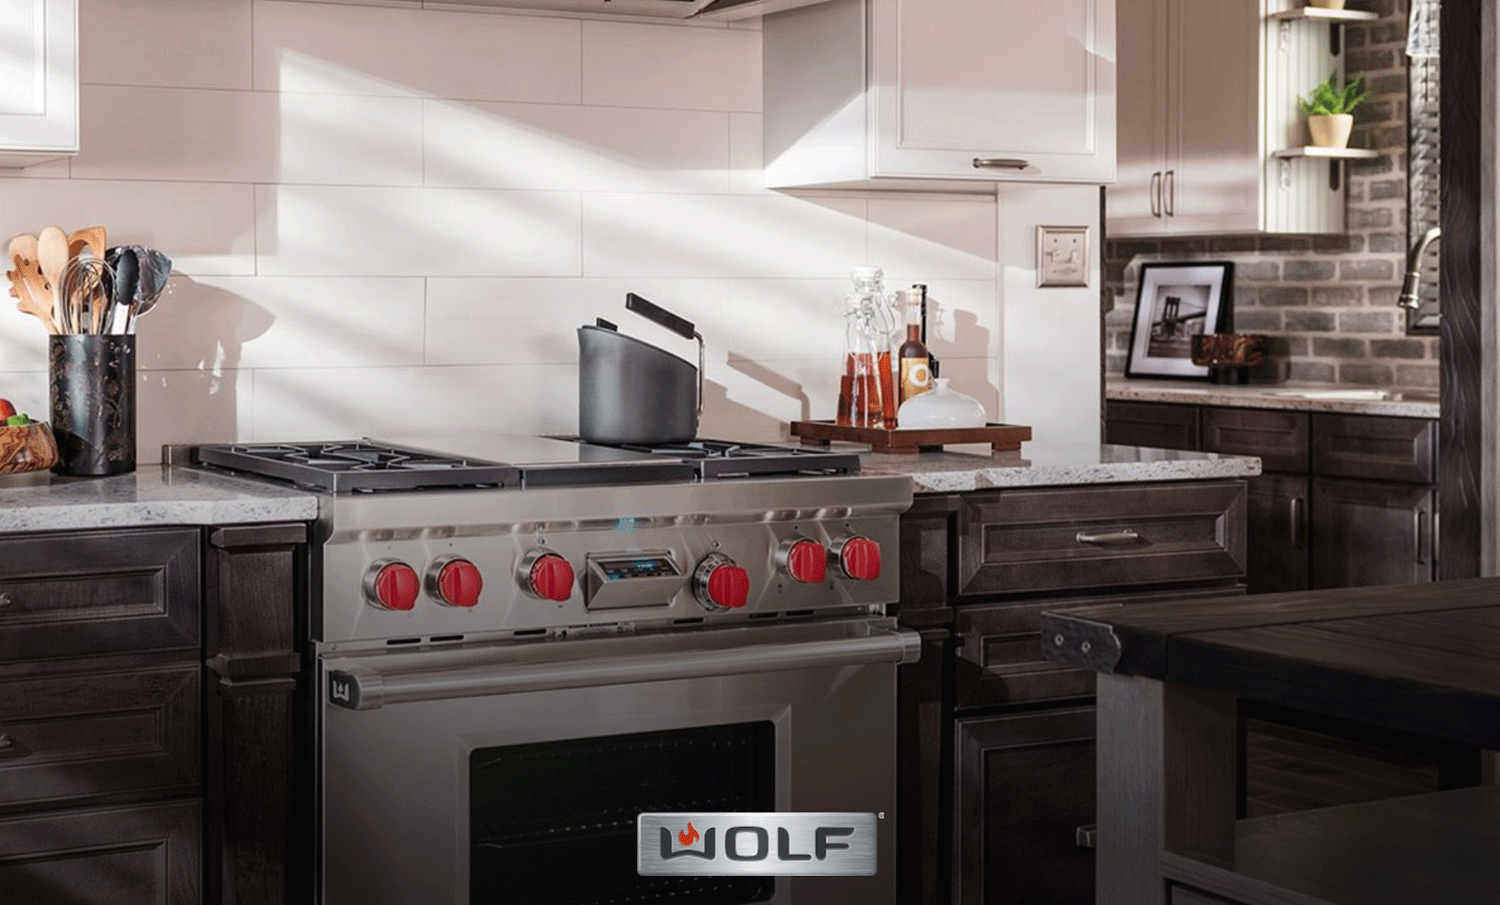 Wolf Range Review - Leading the Pack in High-End Kitchen Stoves